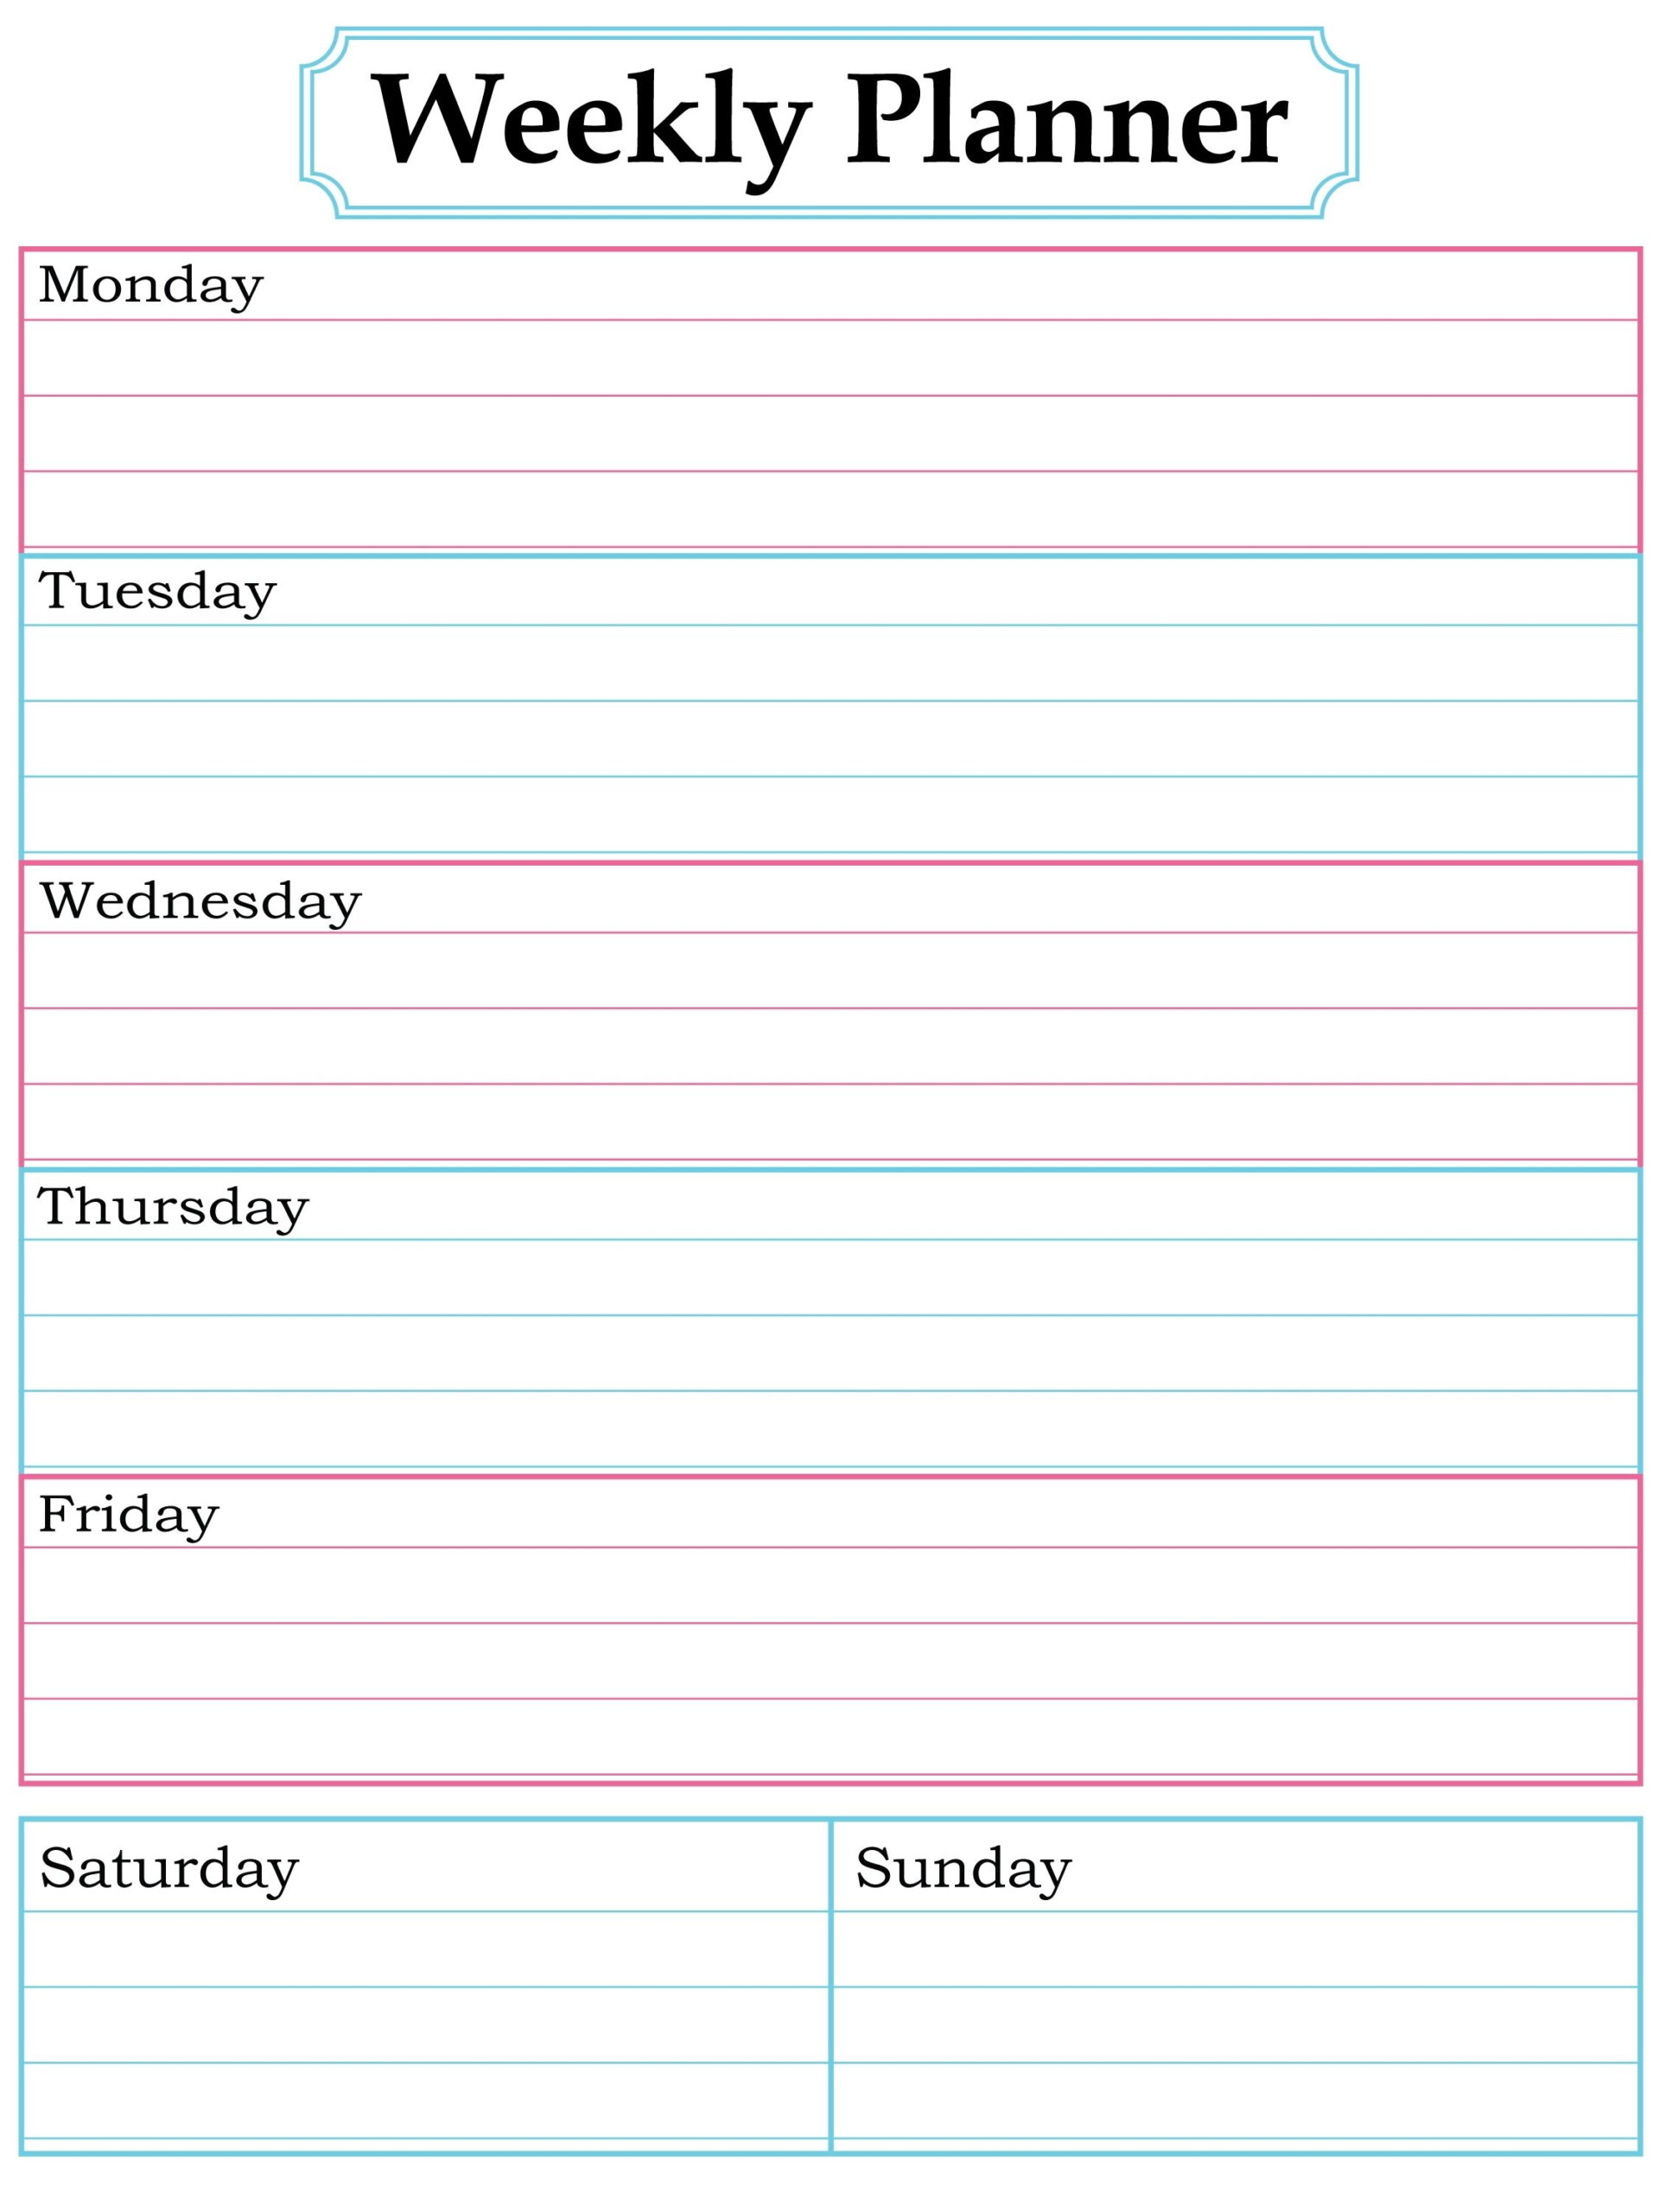 Free Weekly Schedule Tes For Word And Blank Printable inside 5 Day Calendar Template Word